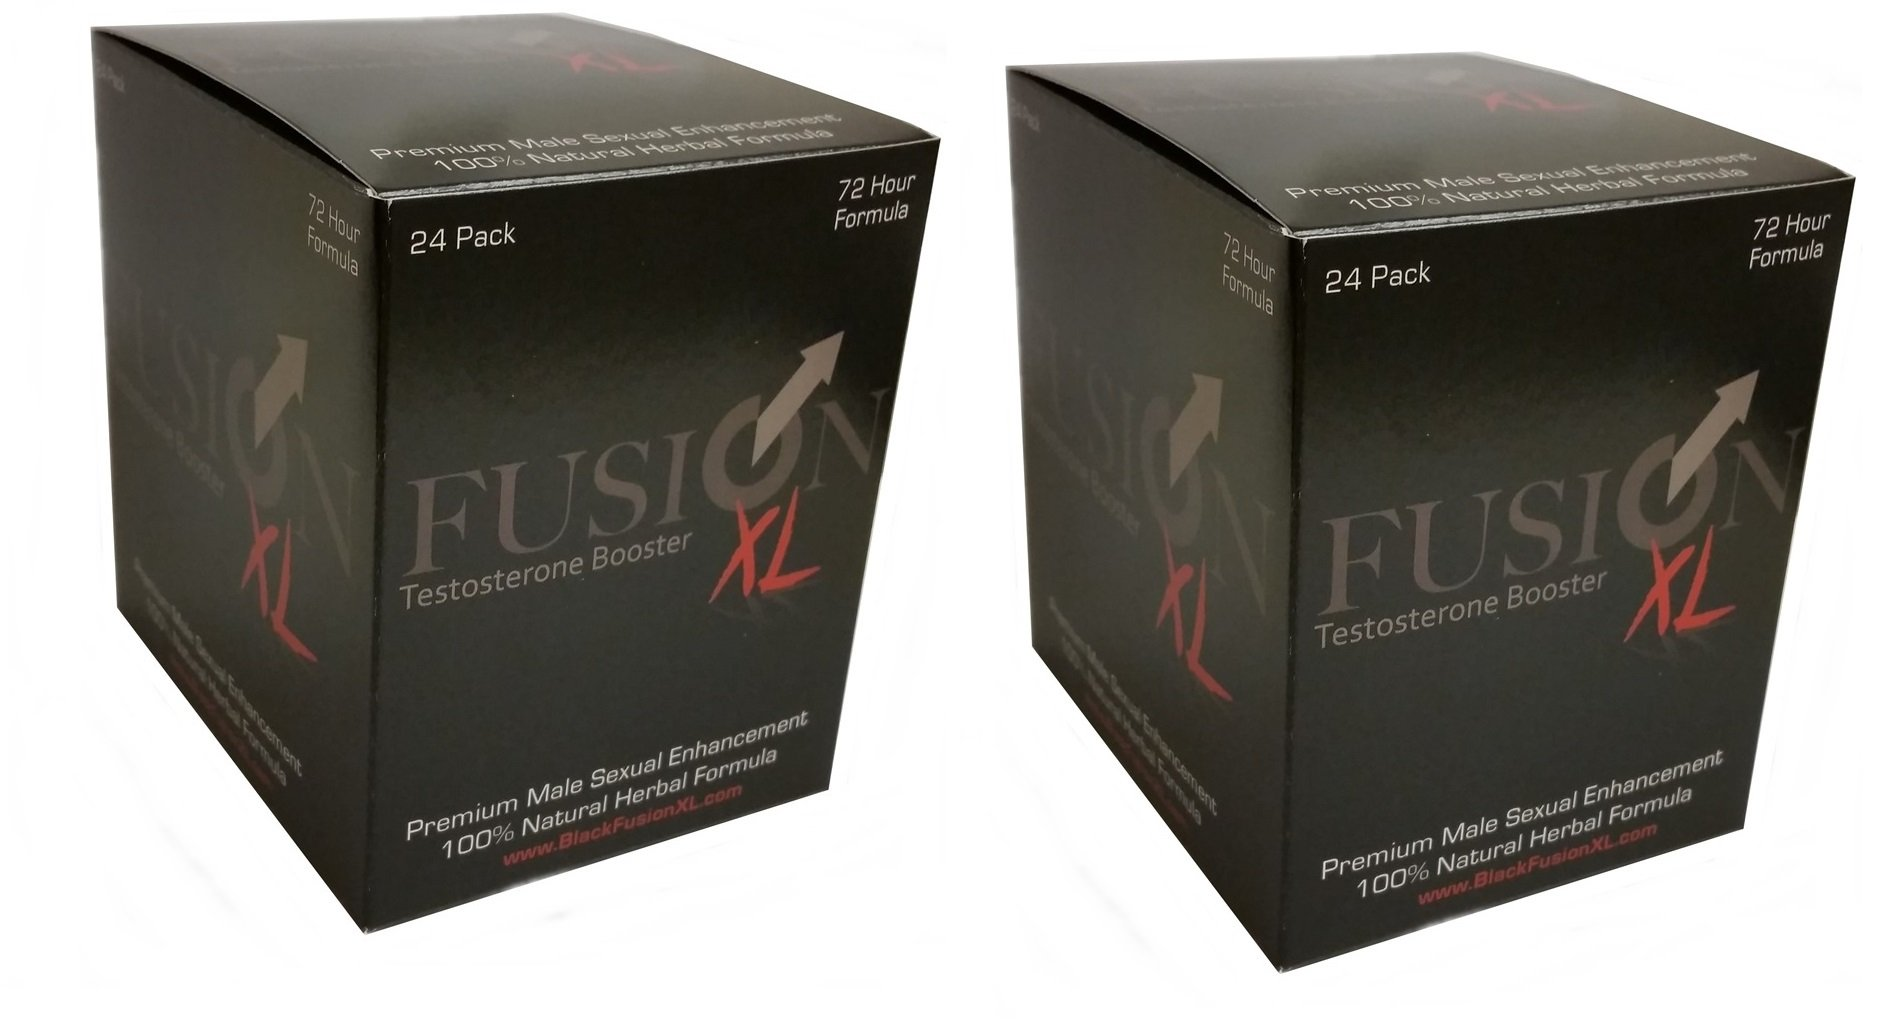 FusionXL Men's Testosterone Booster - Stamina, Endurance and Strength Booster ( 48 Capsules )